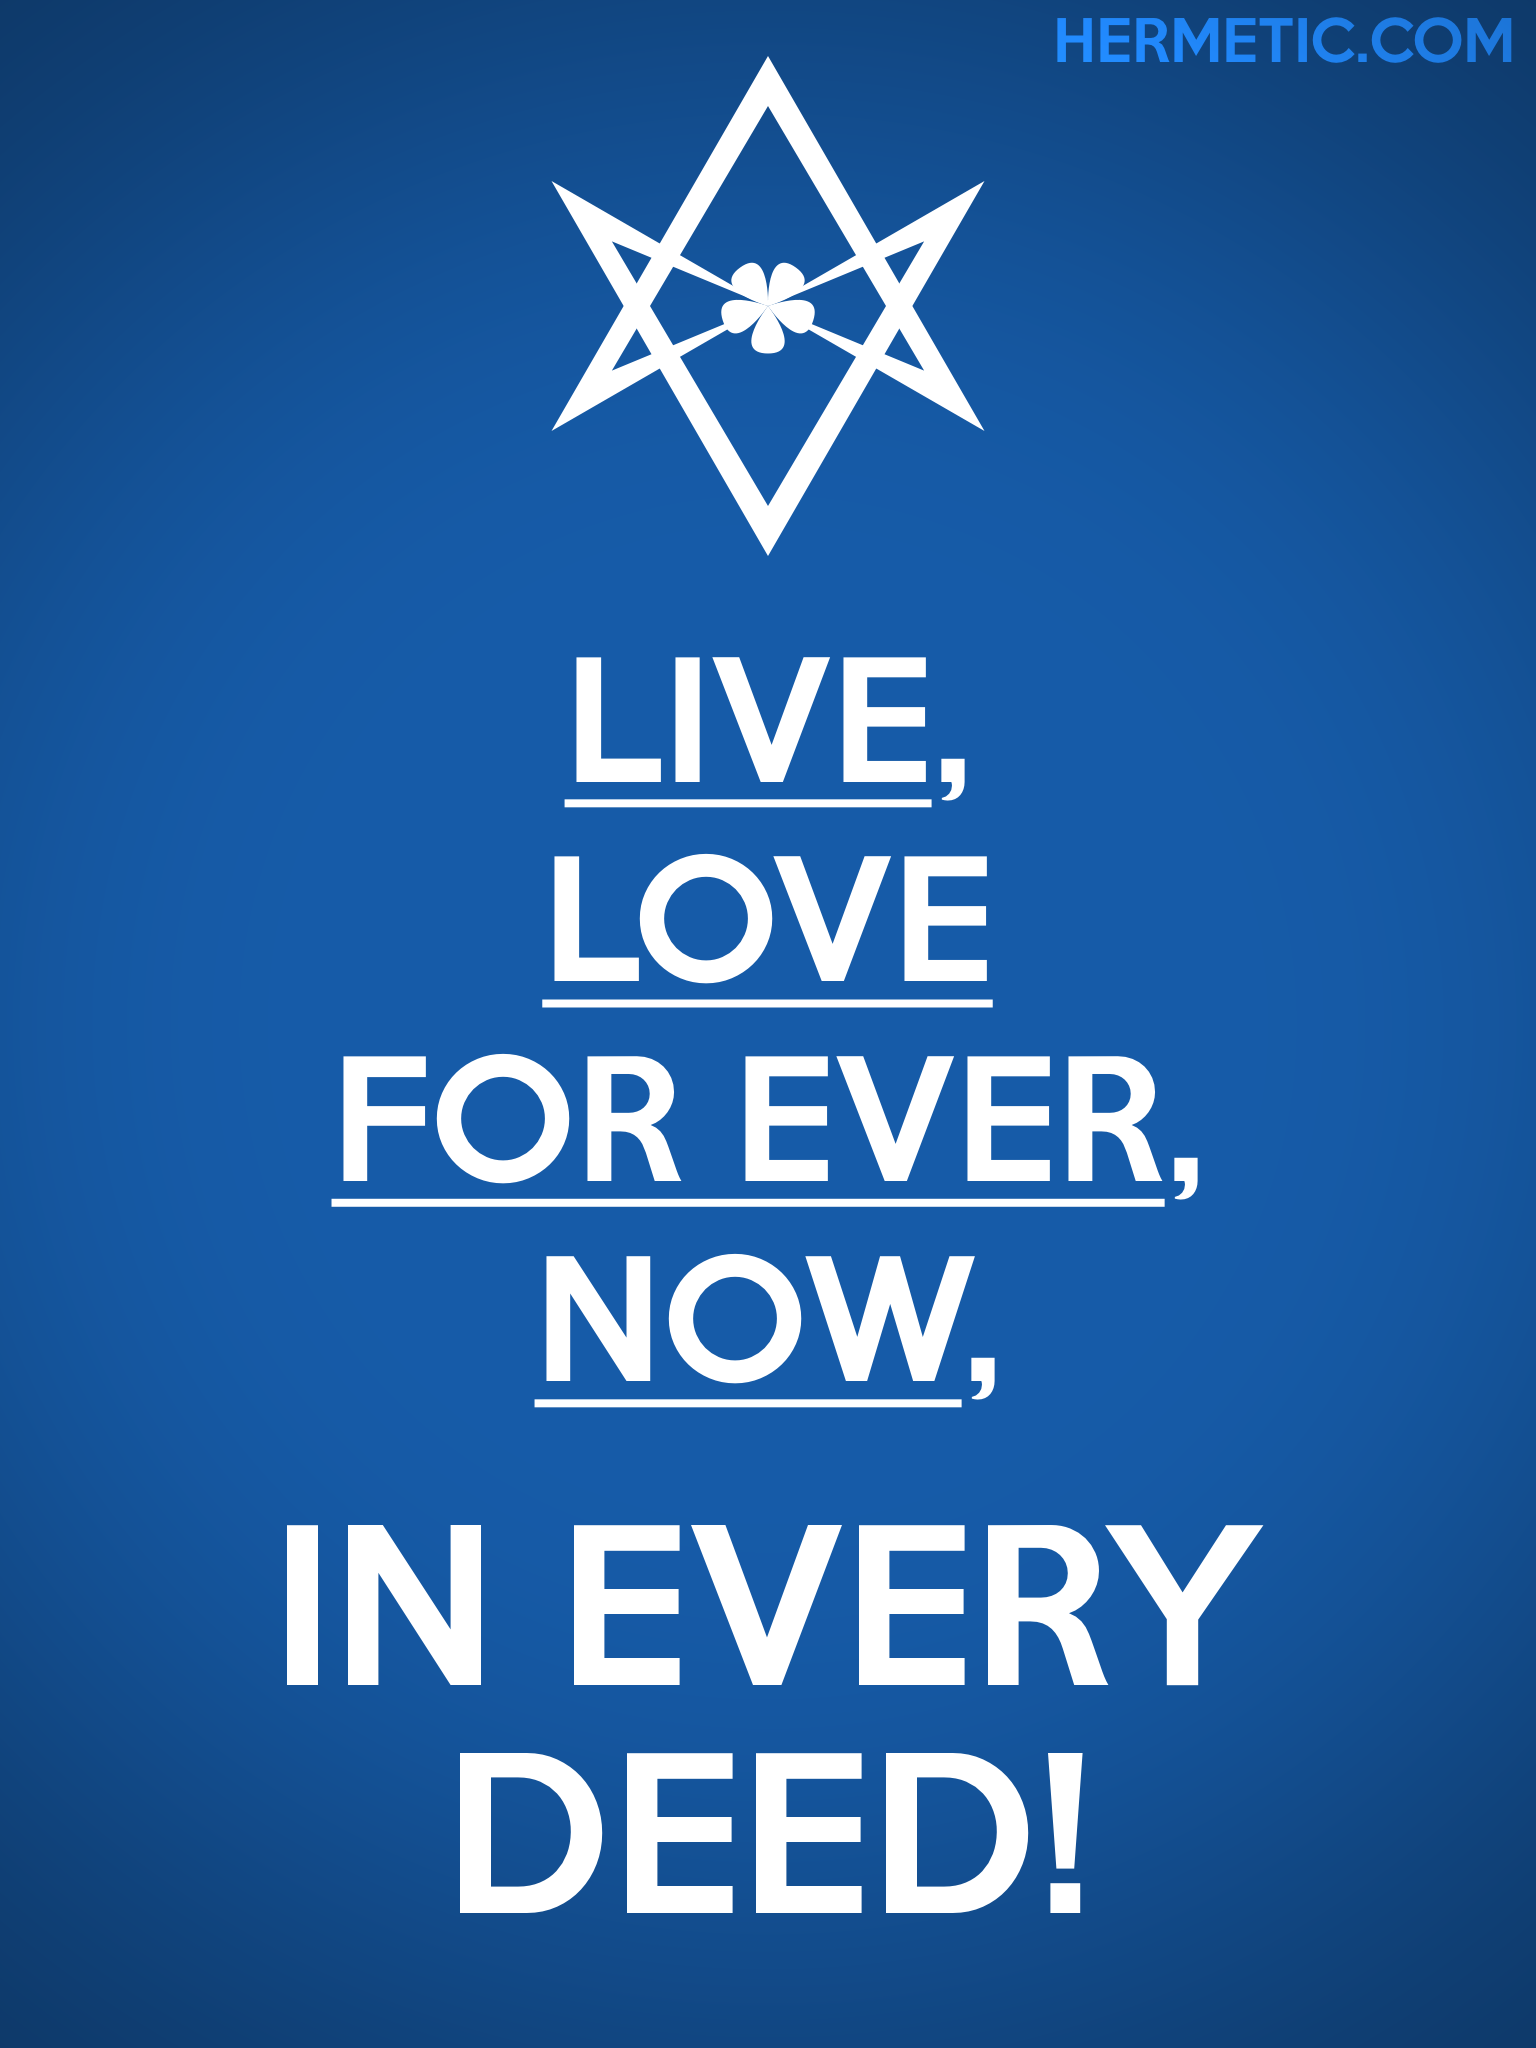 Unicursal LIVE LOVE FOR EVER NOW Propaganda Poster from Hermetic Library Office of the Ministry of Information